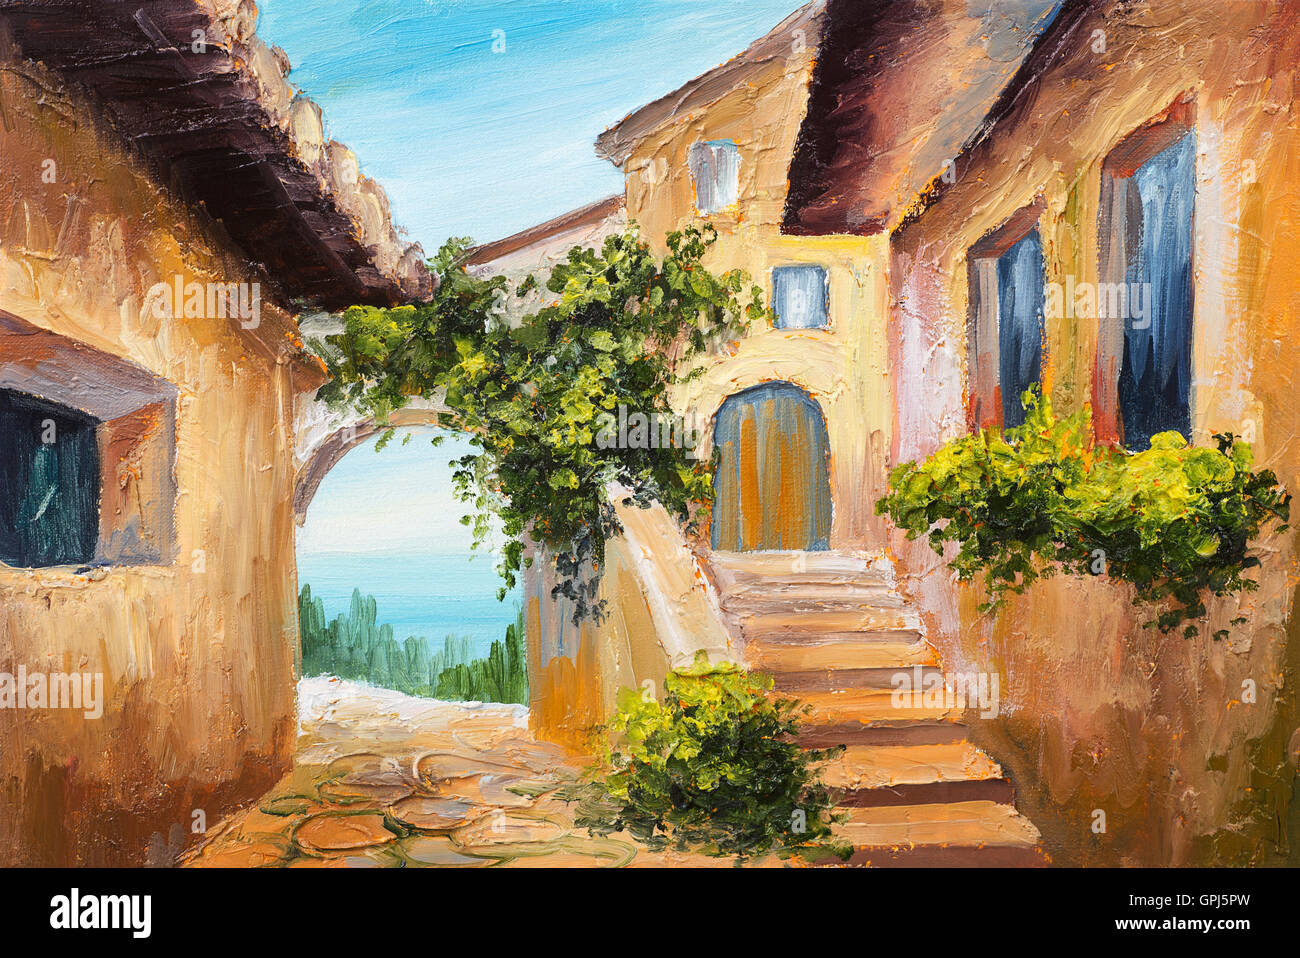 Oil Painting House Near The Sea Colorful Flowers Summer Seascape Stock Photo Royalty Free